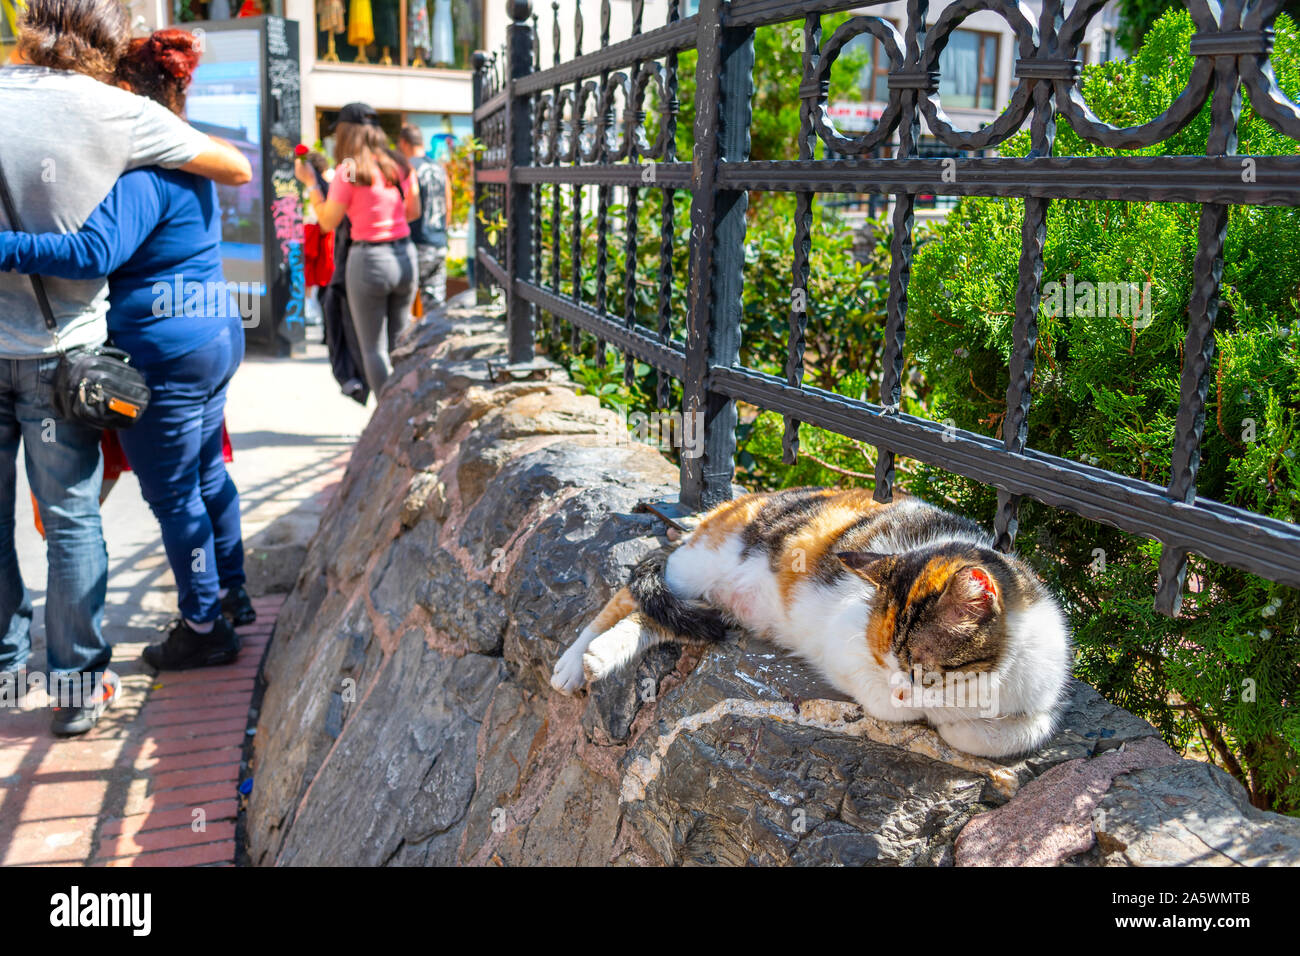 A calico cat sleeps on a rocky gated wall as tourists enjoy a sunny day in the Galata district of Istanbul, Turkey Stock Photo